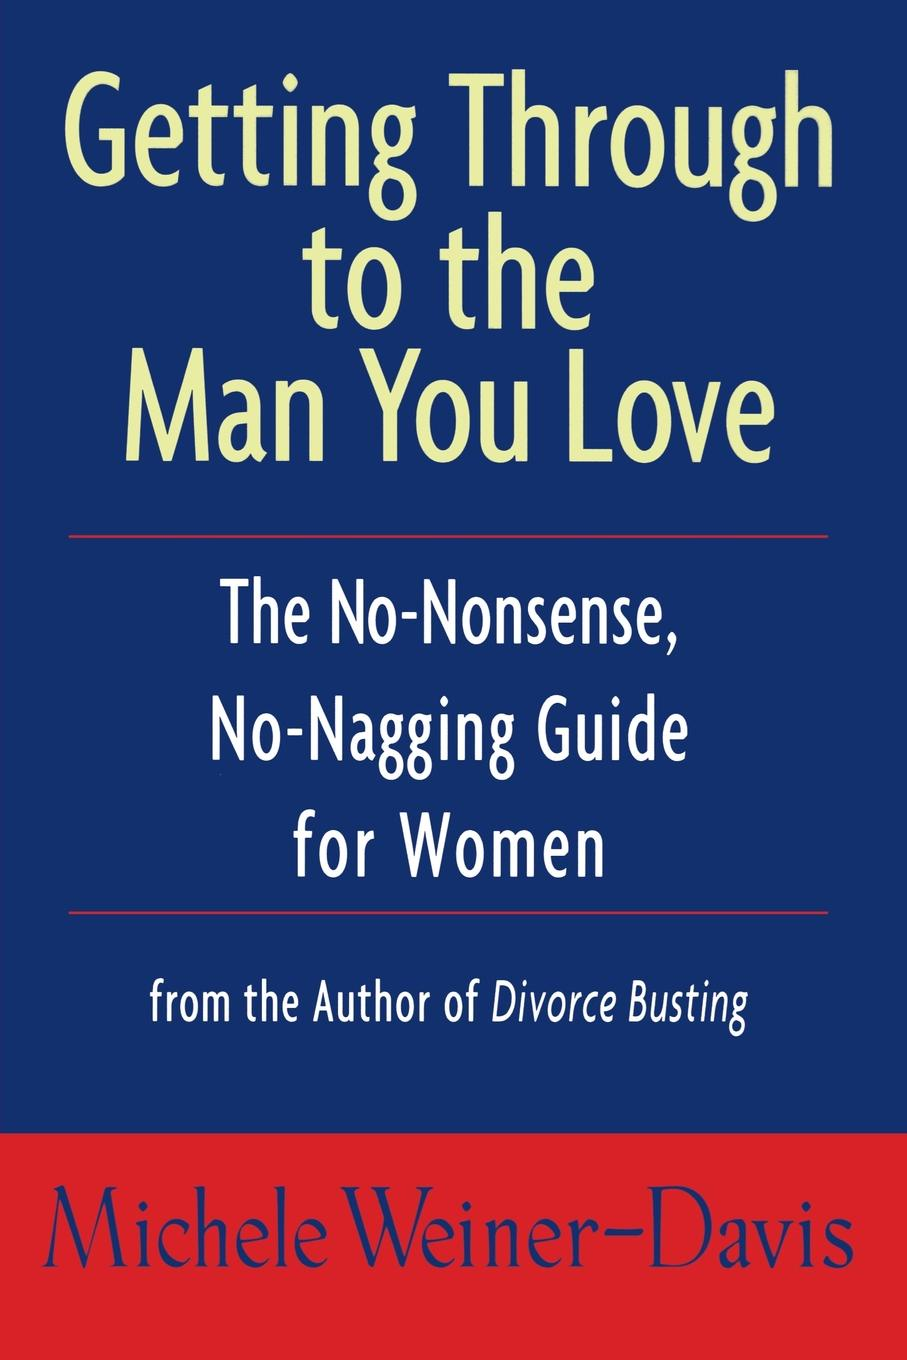 Michele Weiner-Davis, Weiner-Davis Getting Through to the Man You Love. The No-Nonsense, No-Nagging Guide for Women